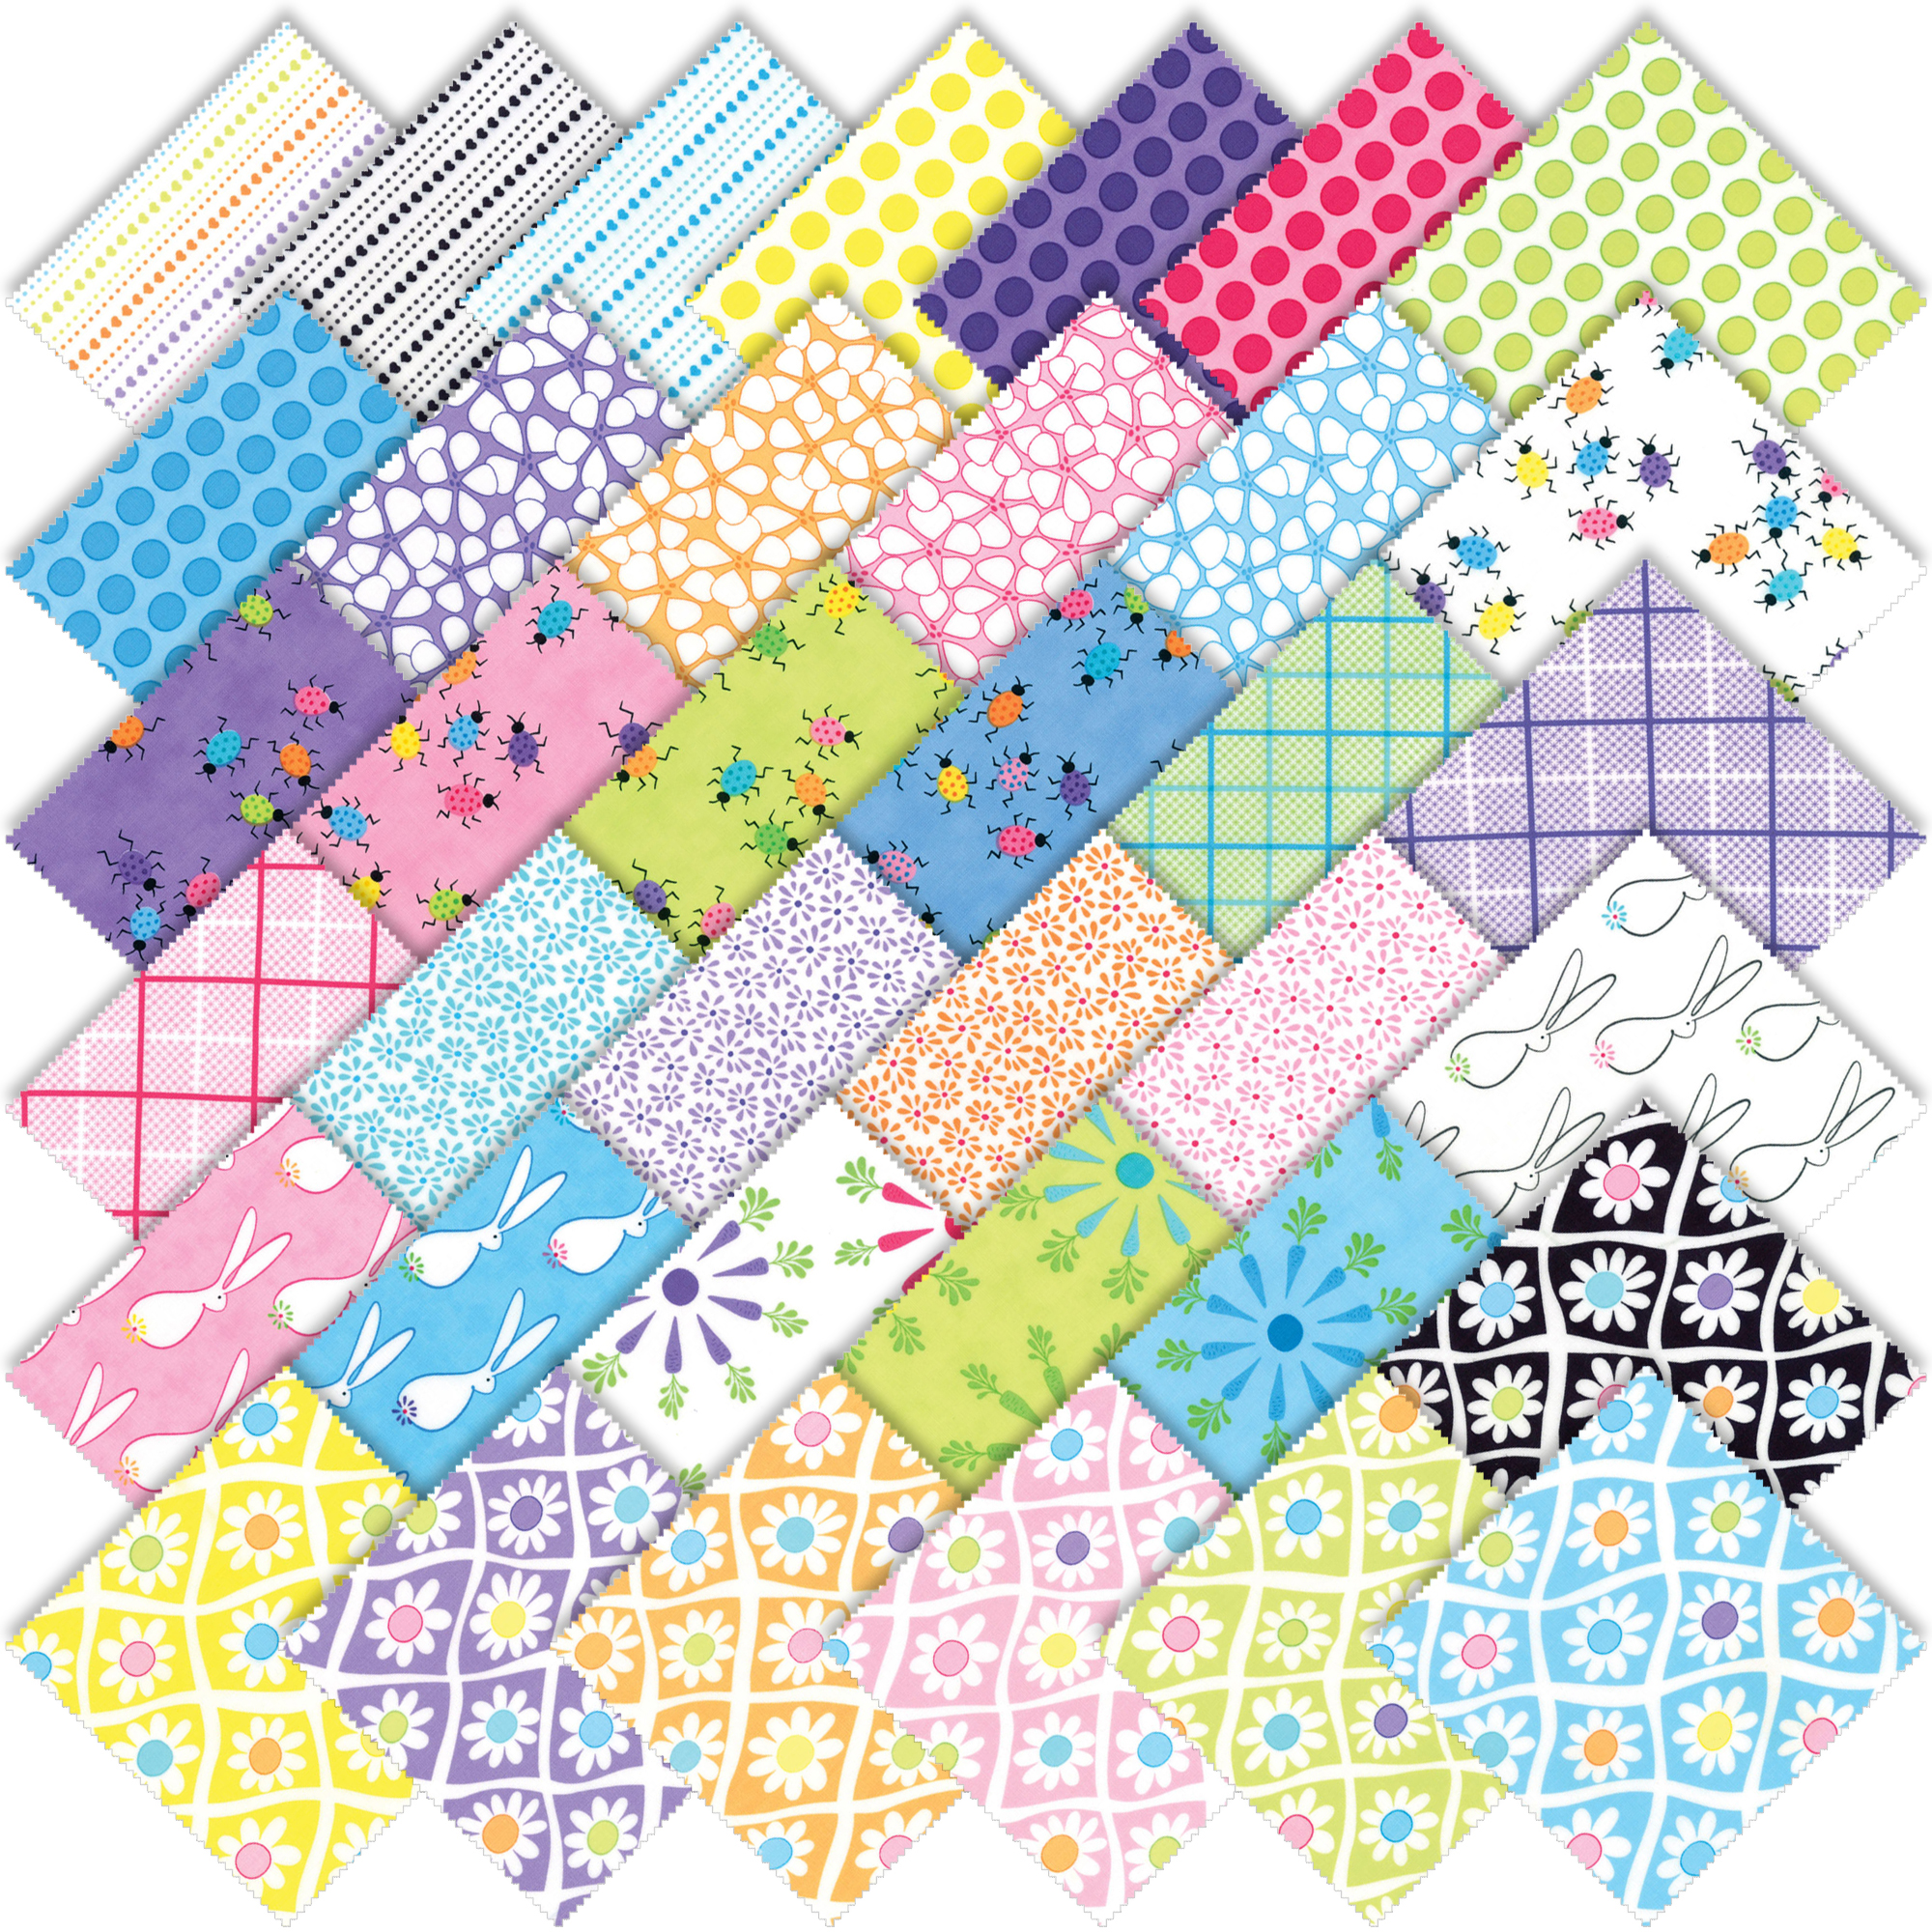 Moda 4.99 Shipping in the U.S For One Week Me and My Sister Designs Good Day Fat Quarter Bundle 37 Skus